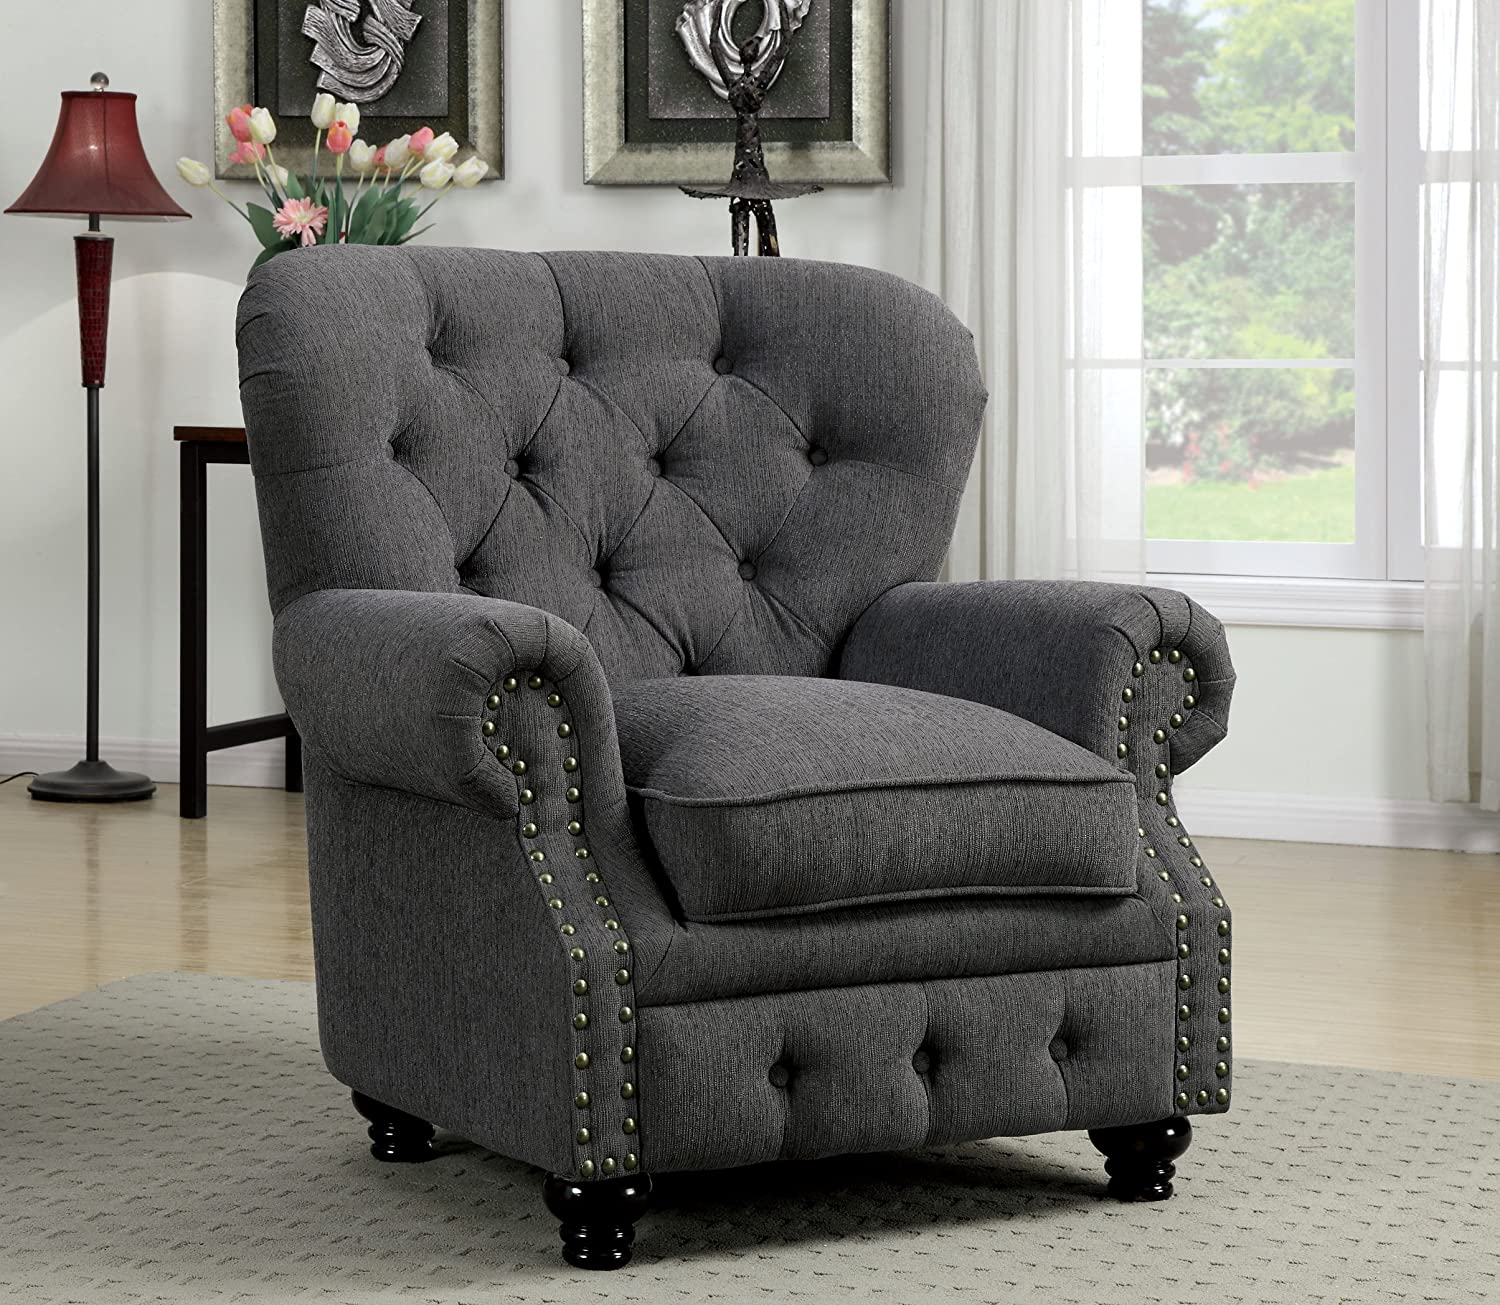 Furniture of America Linden Traditional Arm Chair, Gray